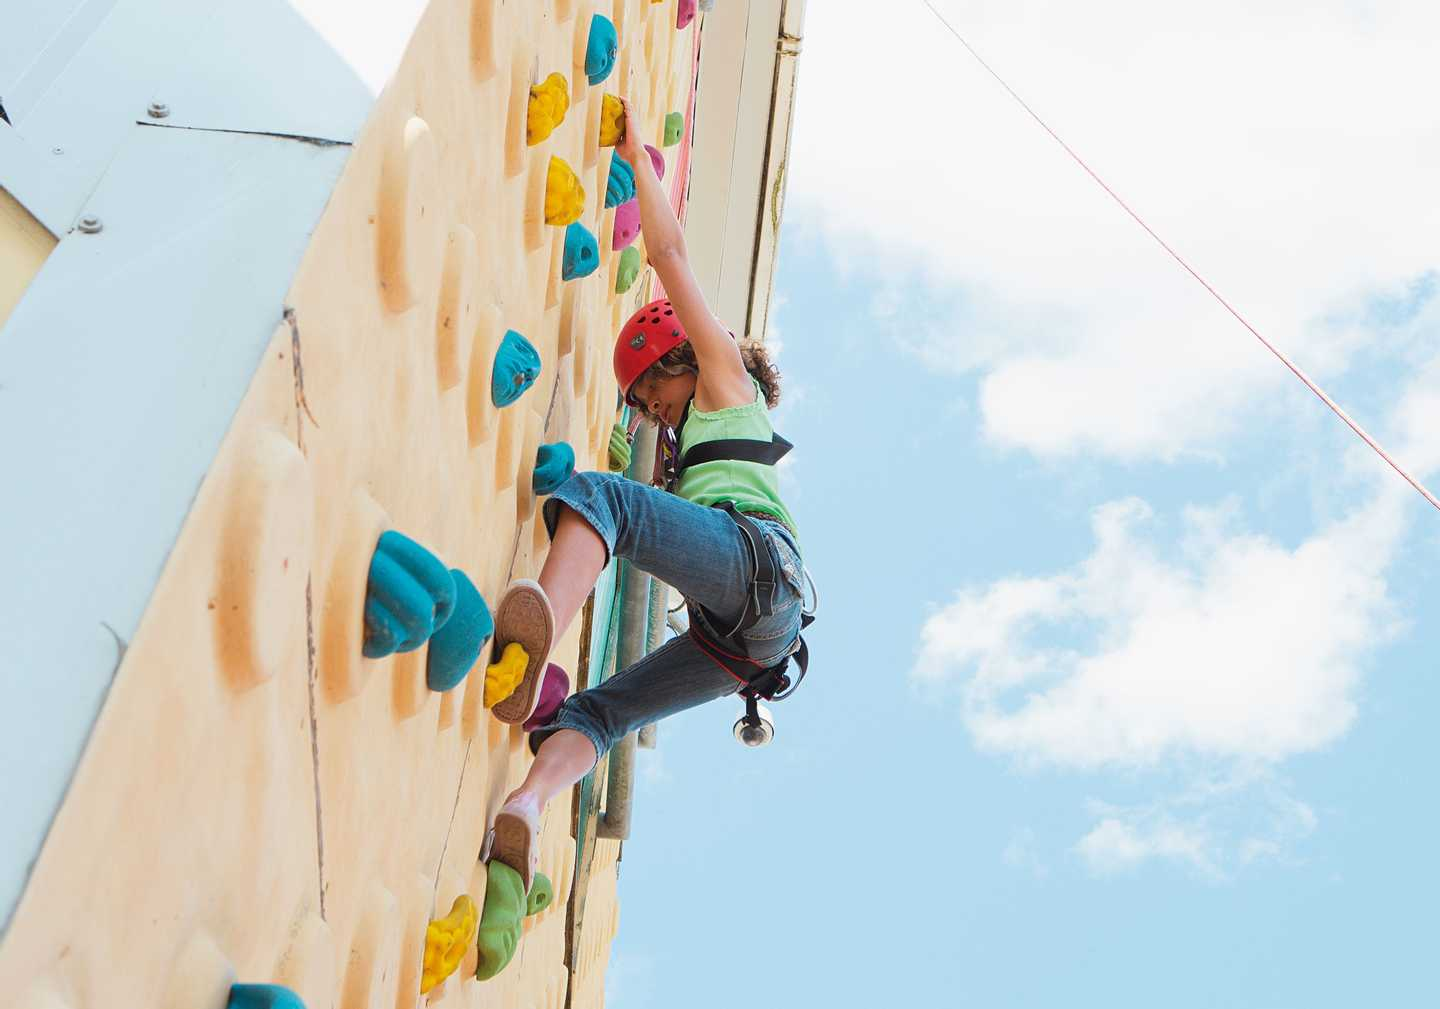 Guests climbing up the outdoor climbing wall